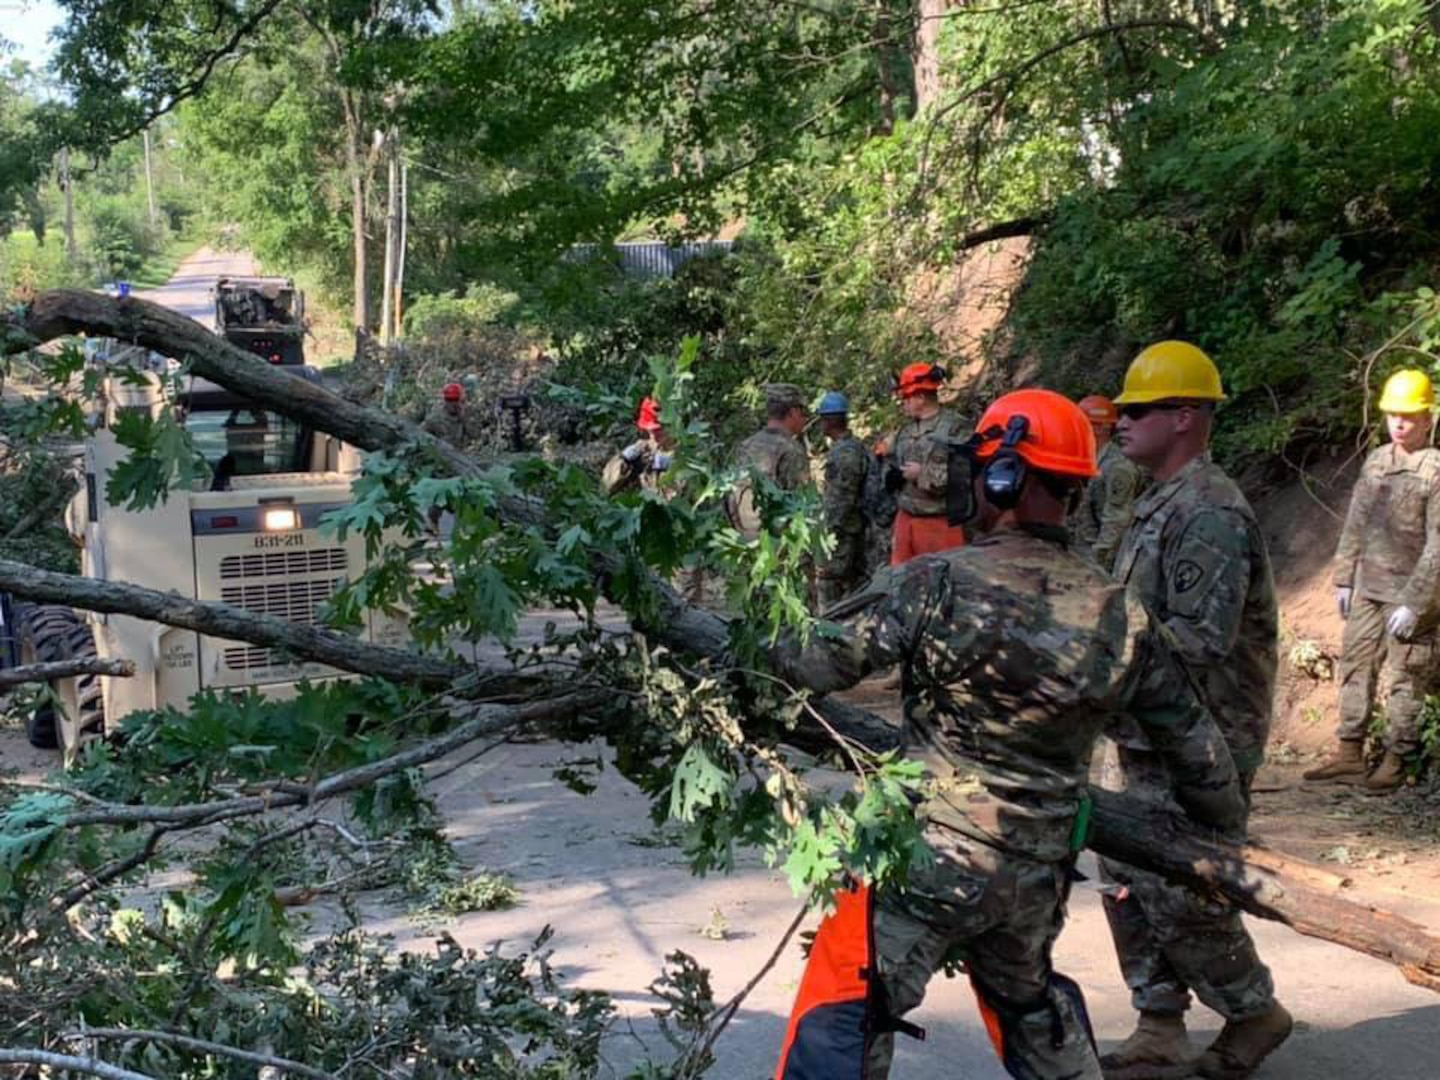 Over the Aug. 15-16, 2020, weekend, Iowa National Guard Soldiers with the 831st Engineer Company worked to clear downed trees to reach a substation that supplies power to parts of Cedar Rapids. The Guard assisted with cleanup efforts after a derecho struck the area Aug. 10.